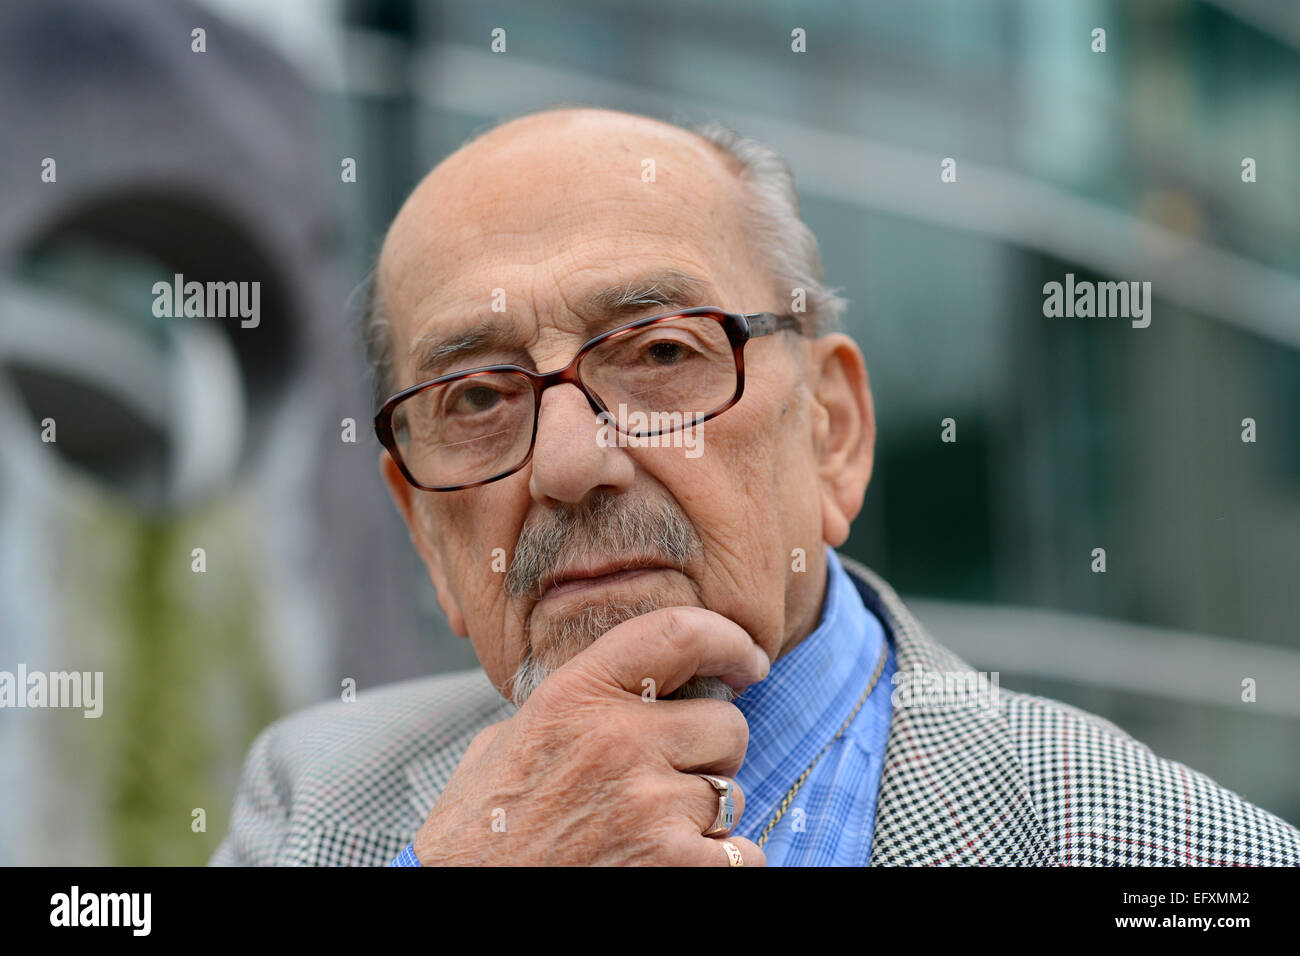 Holocaust survivor Harry Bibring who escaped from Vienna in 1939 and travelled to Britain - Stock Image